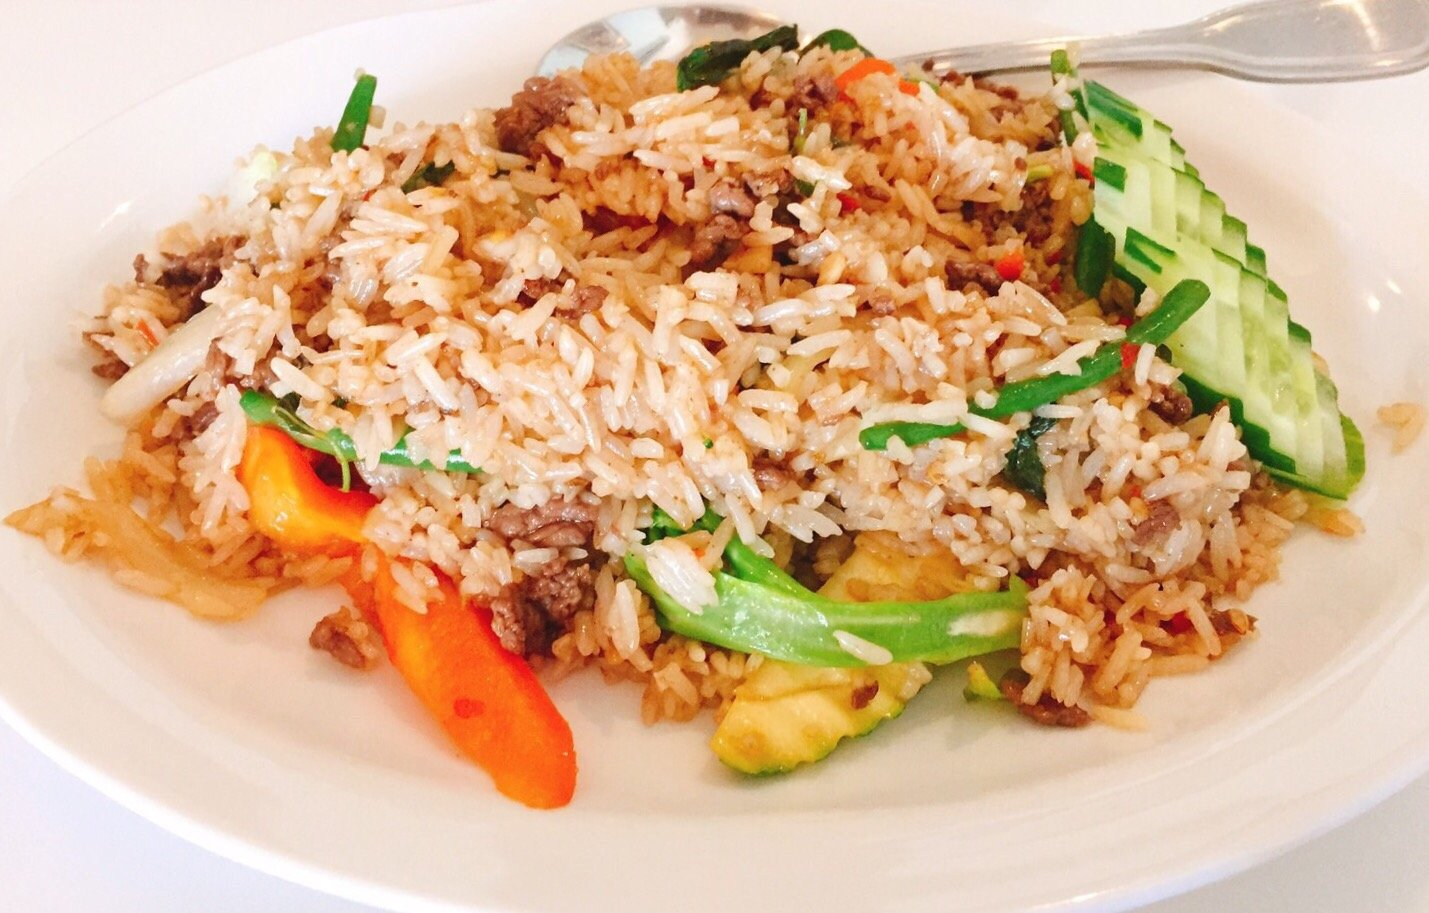 Royal thai cuisine kihei menu prices restaurant for Asian cuisine maui